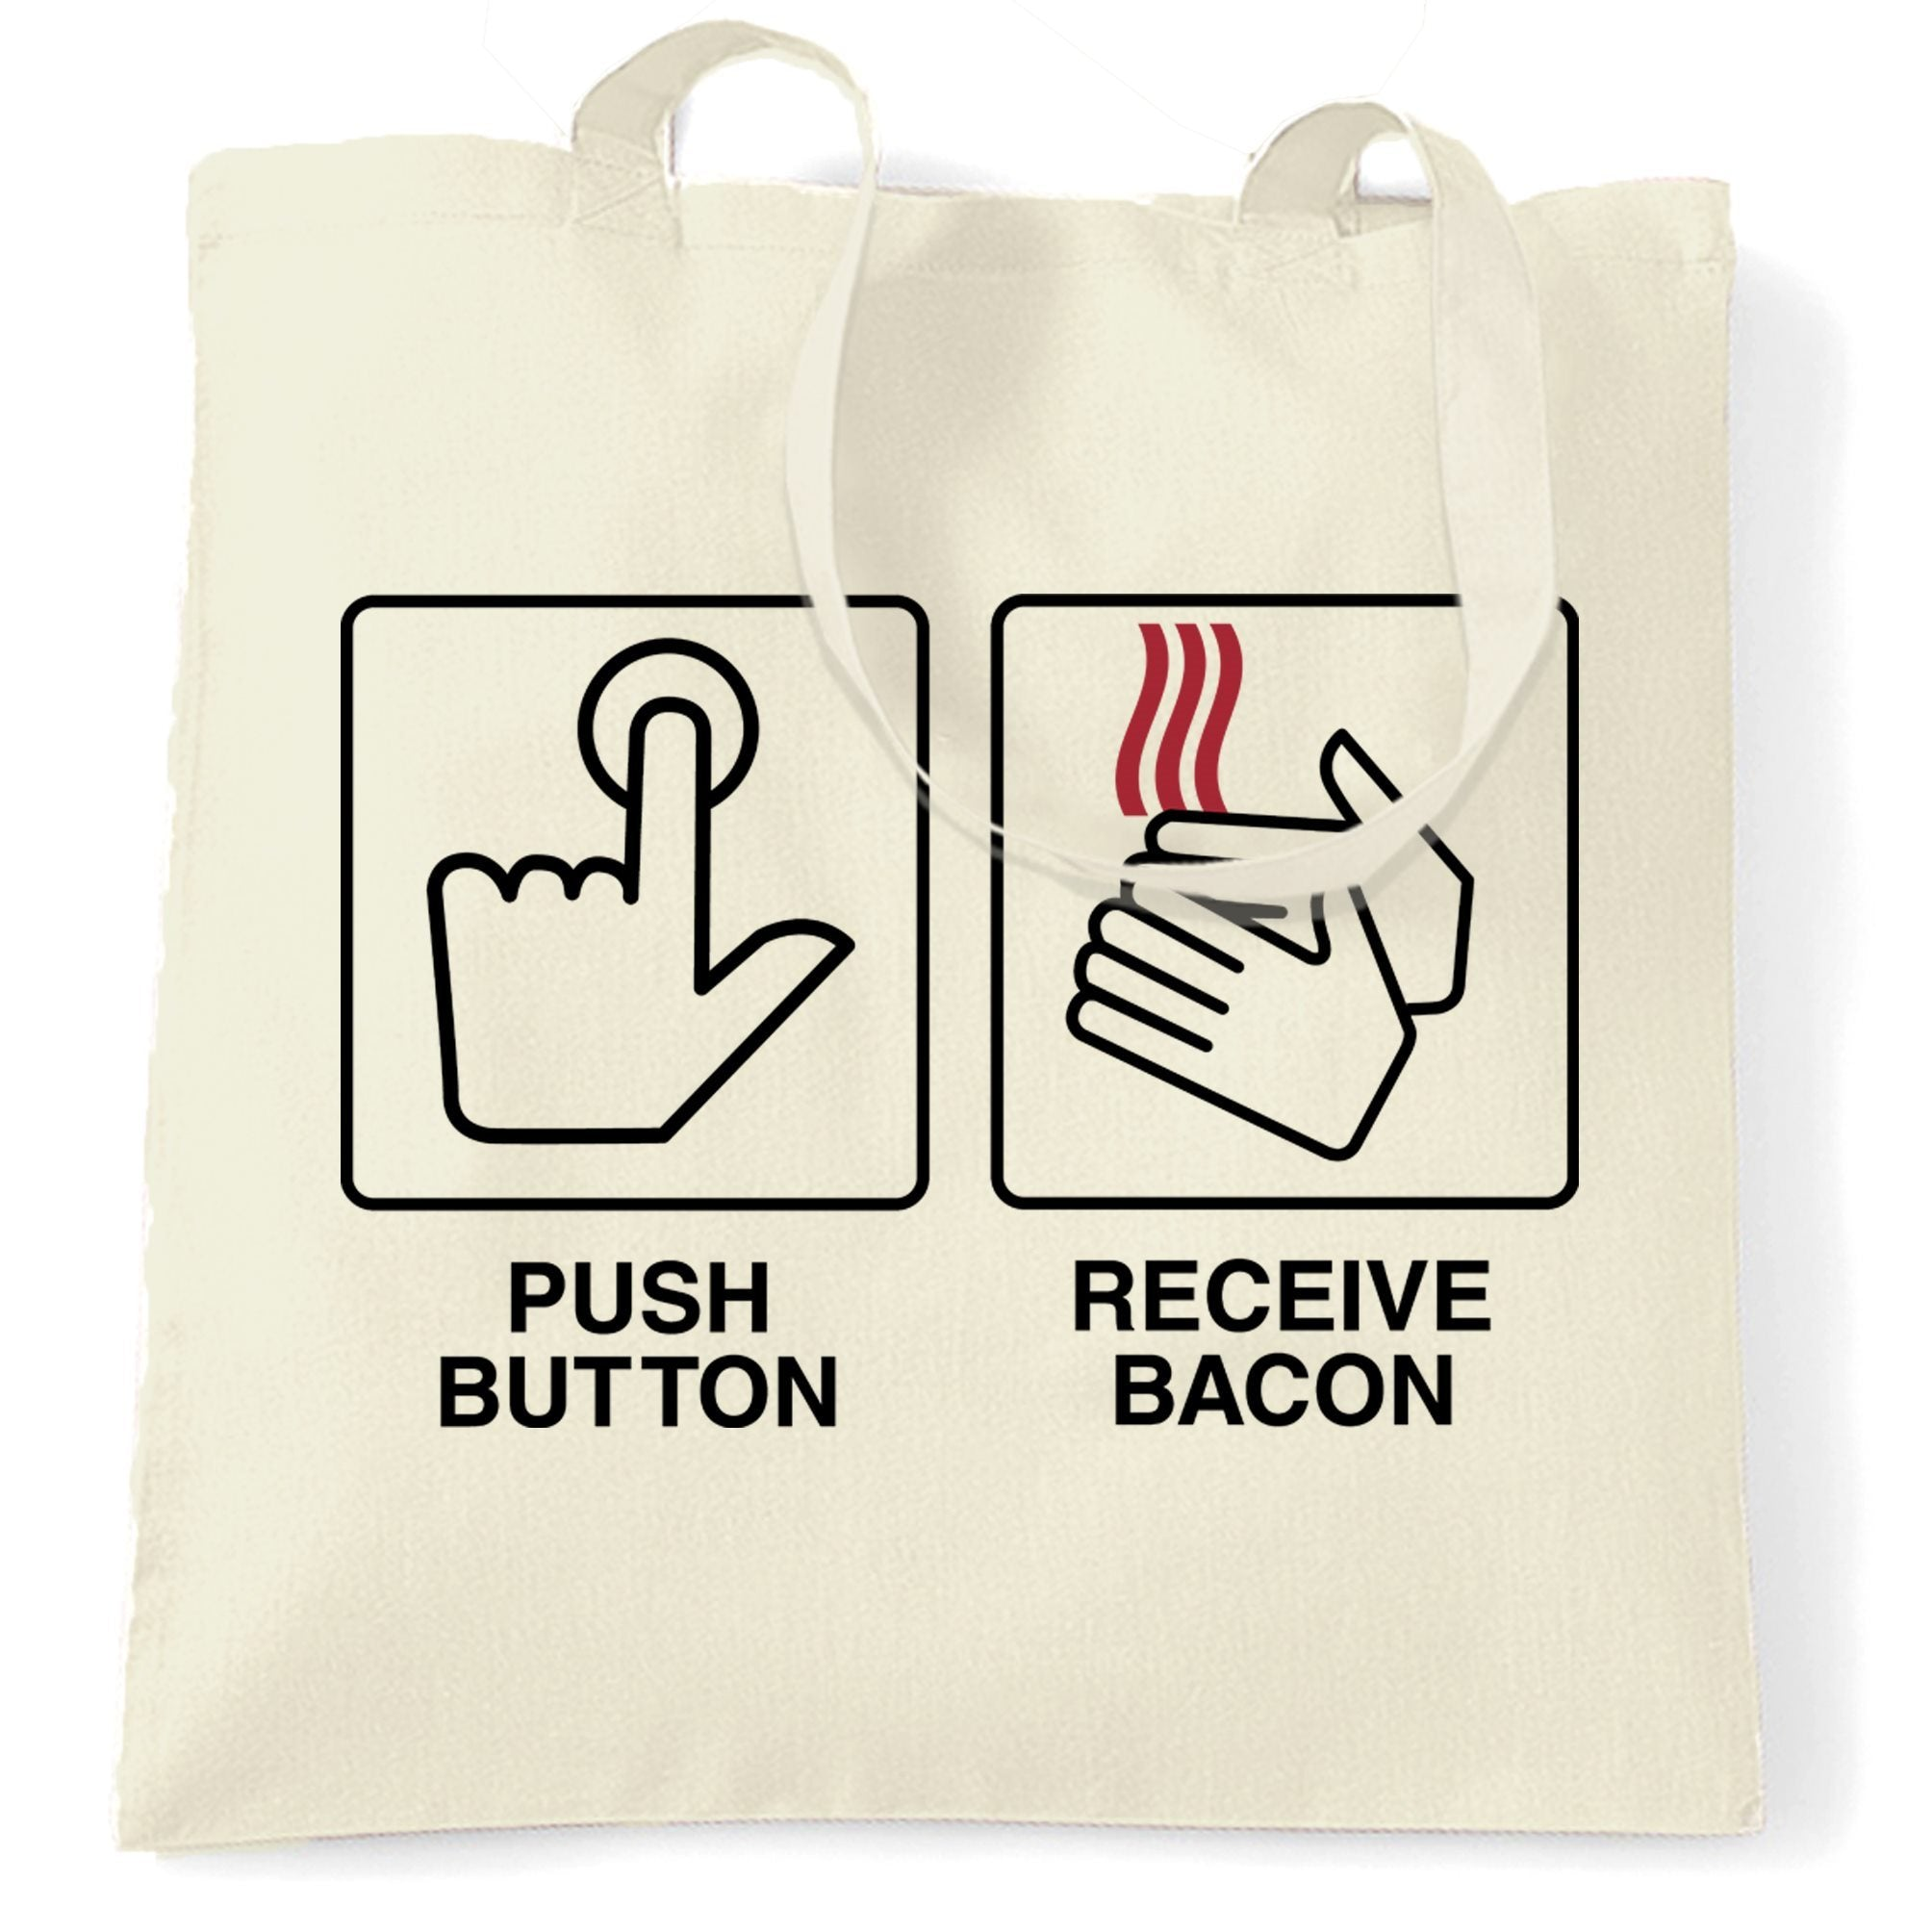 Novelty Tote Bag Push Button, Recieve Bacon Meme